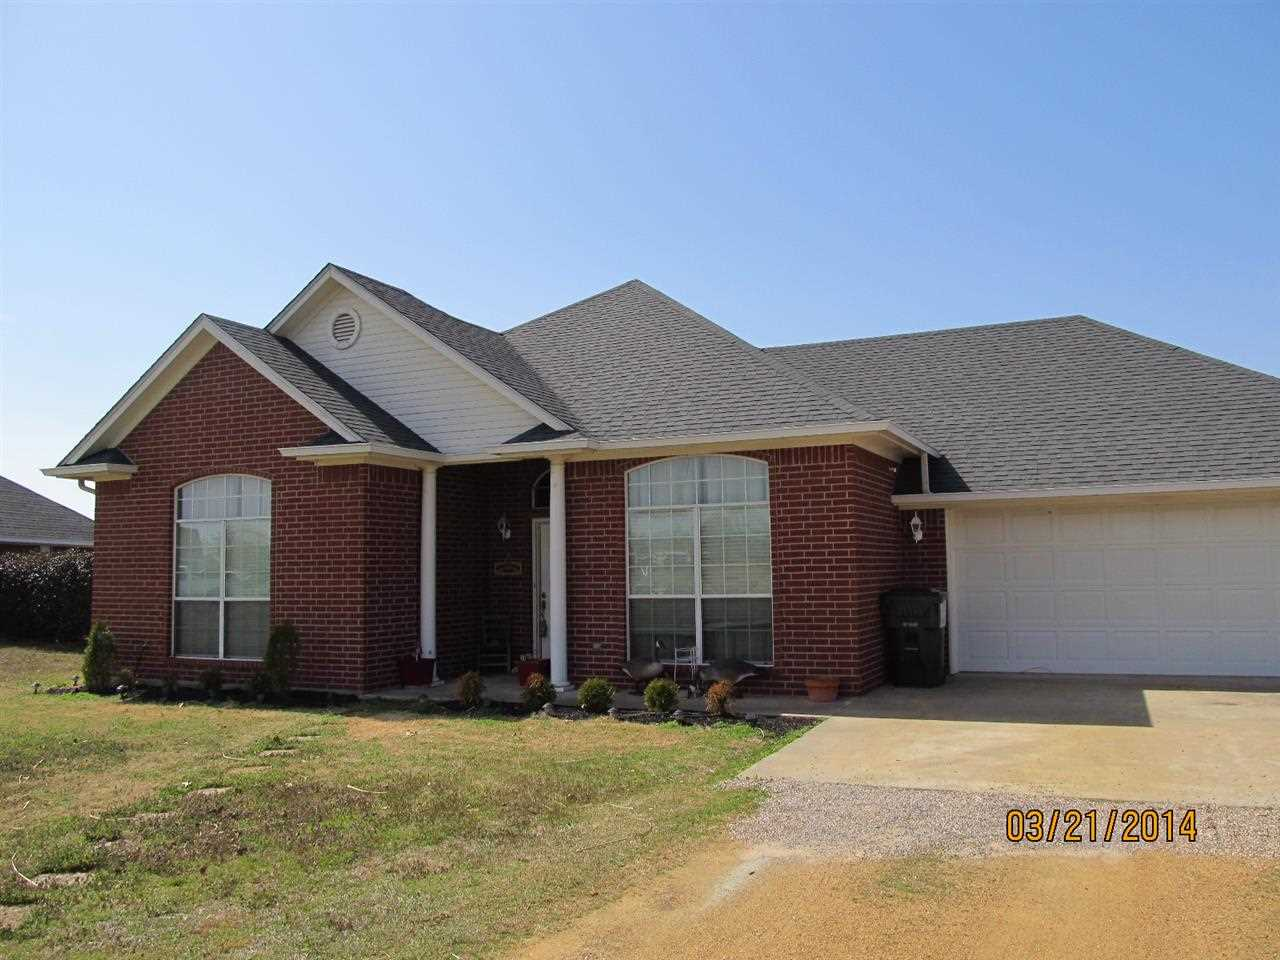 213 Summit Cir, Durant, OK 74701